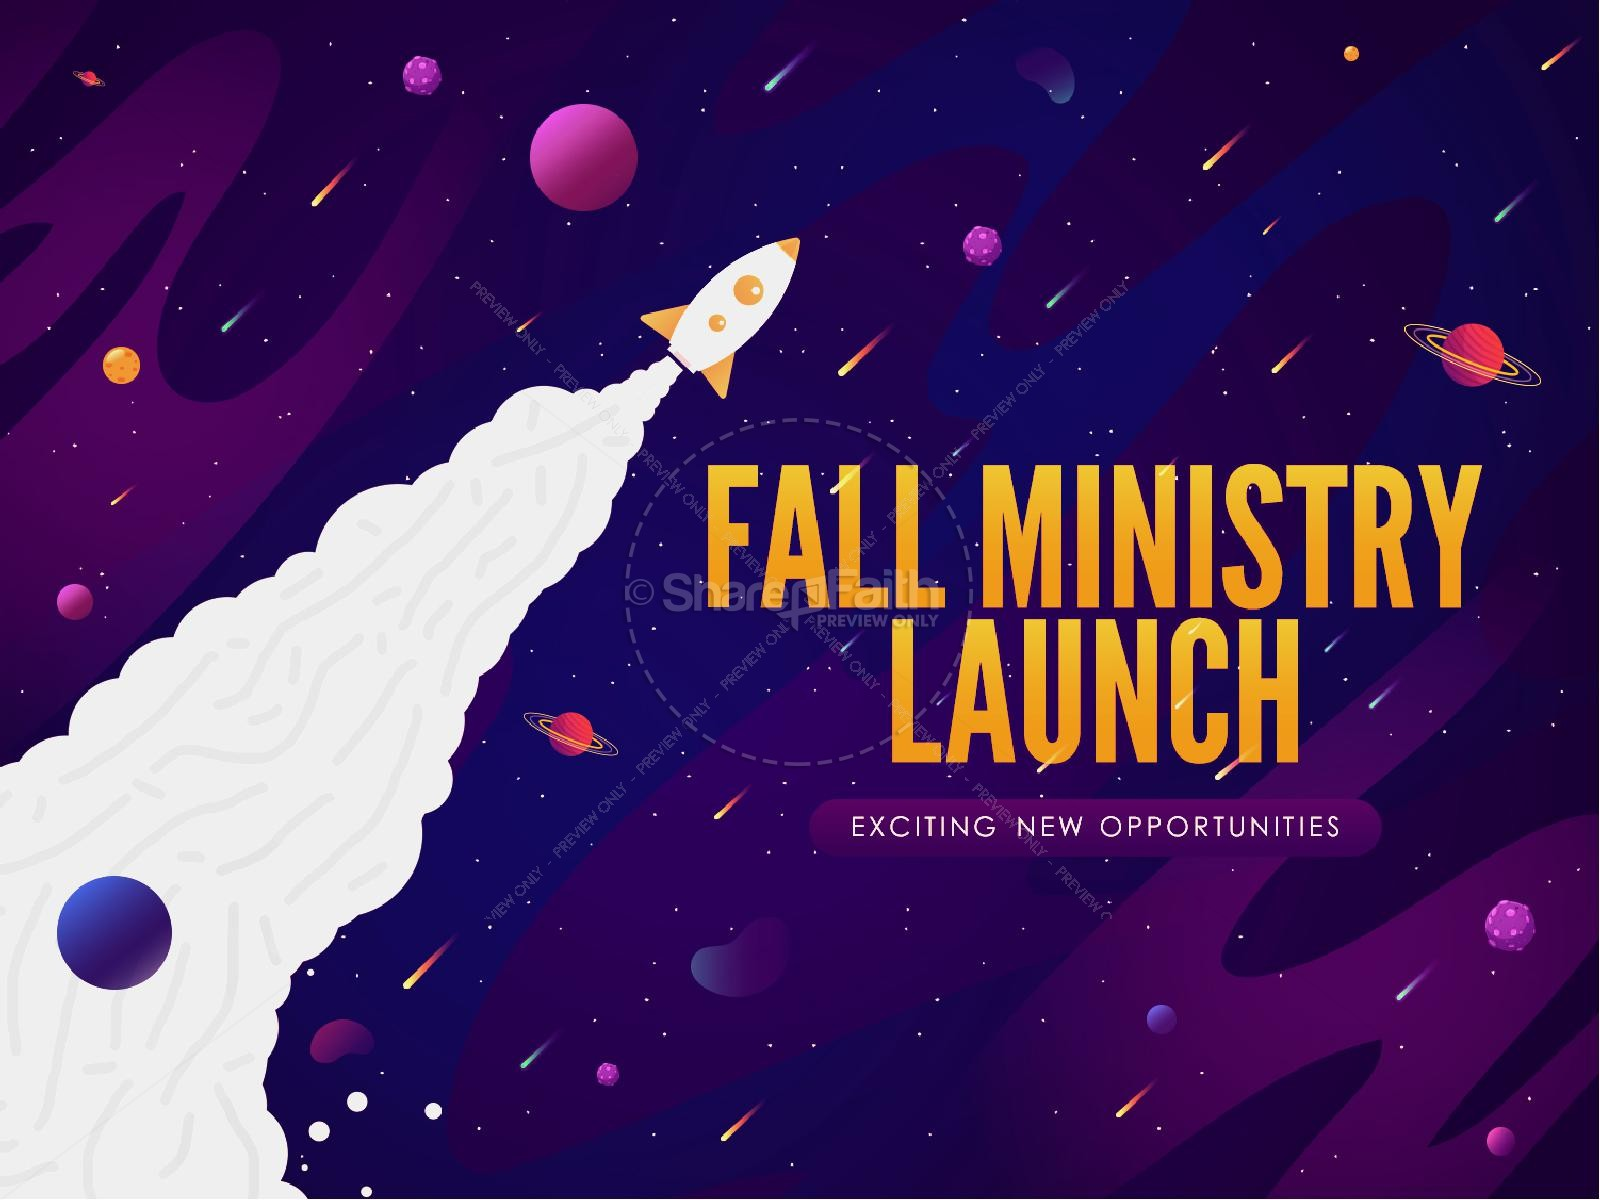 Fall Ministry Launch Church Title Graphic